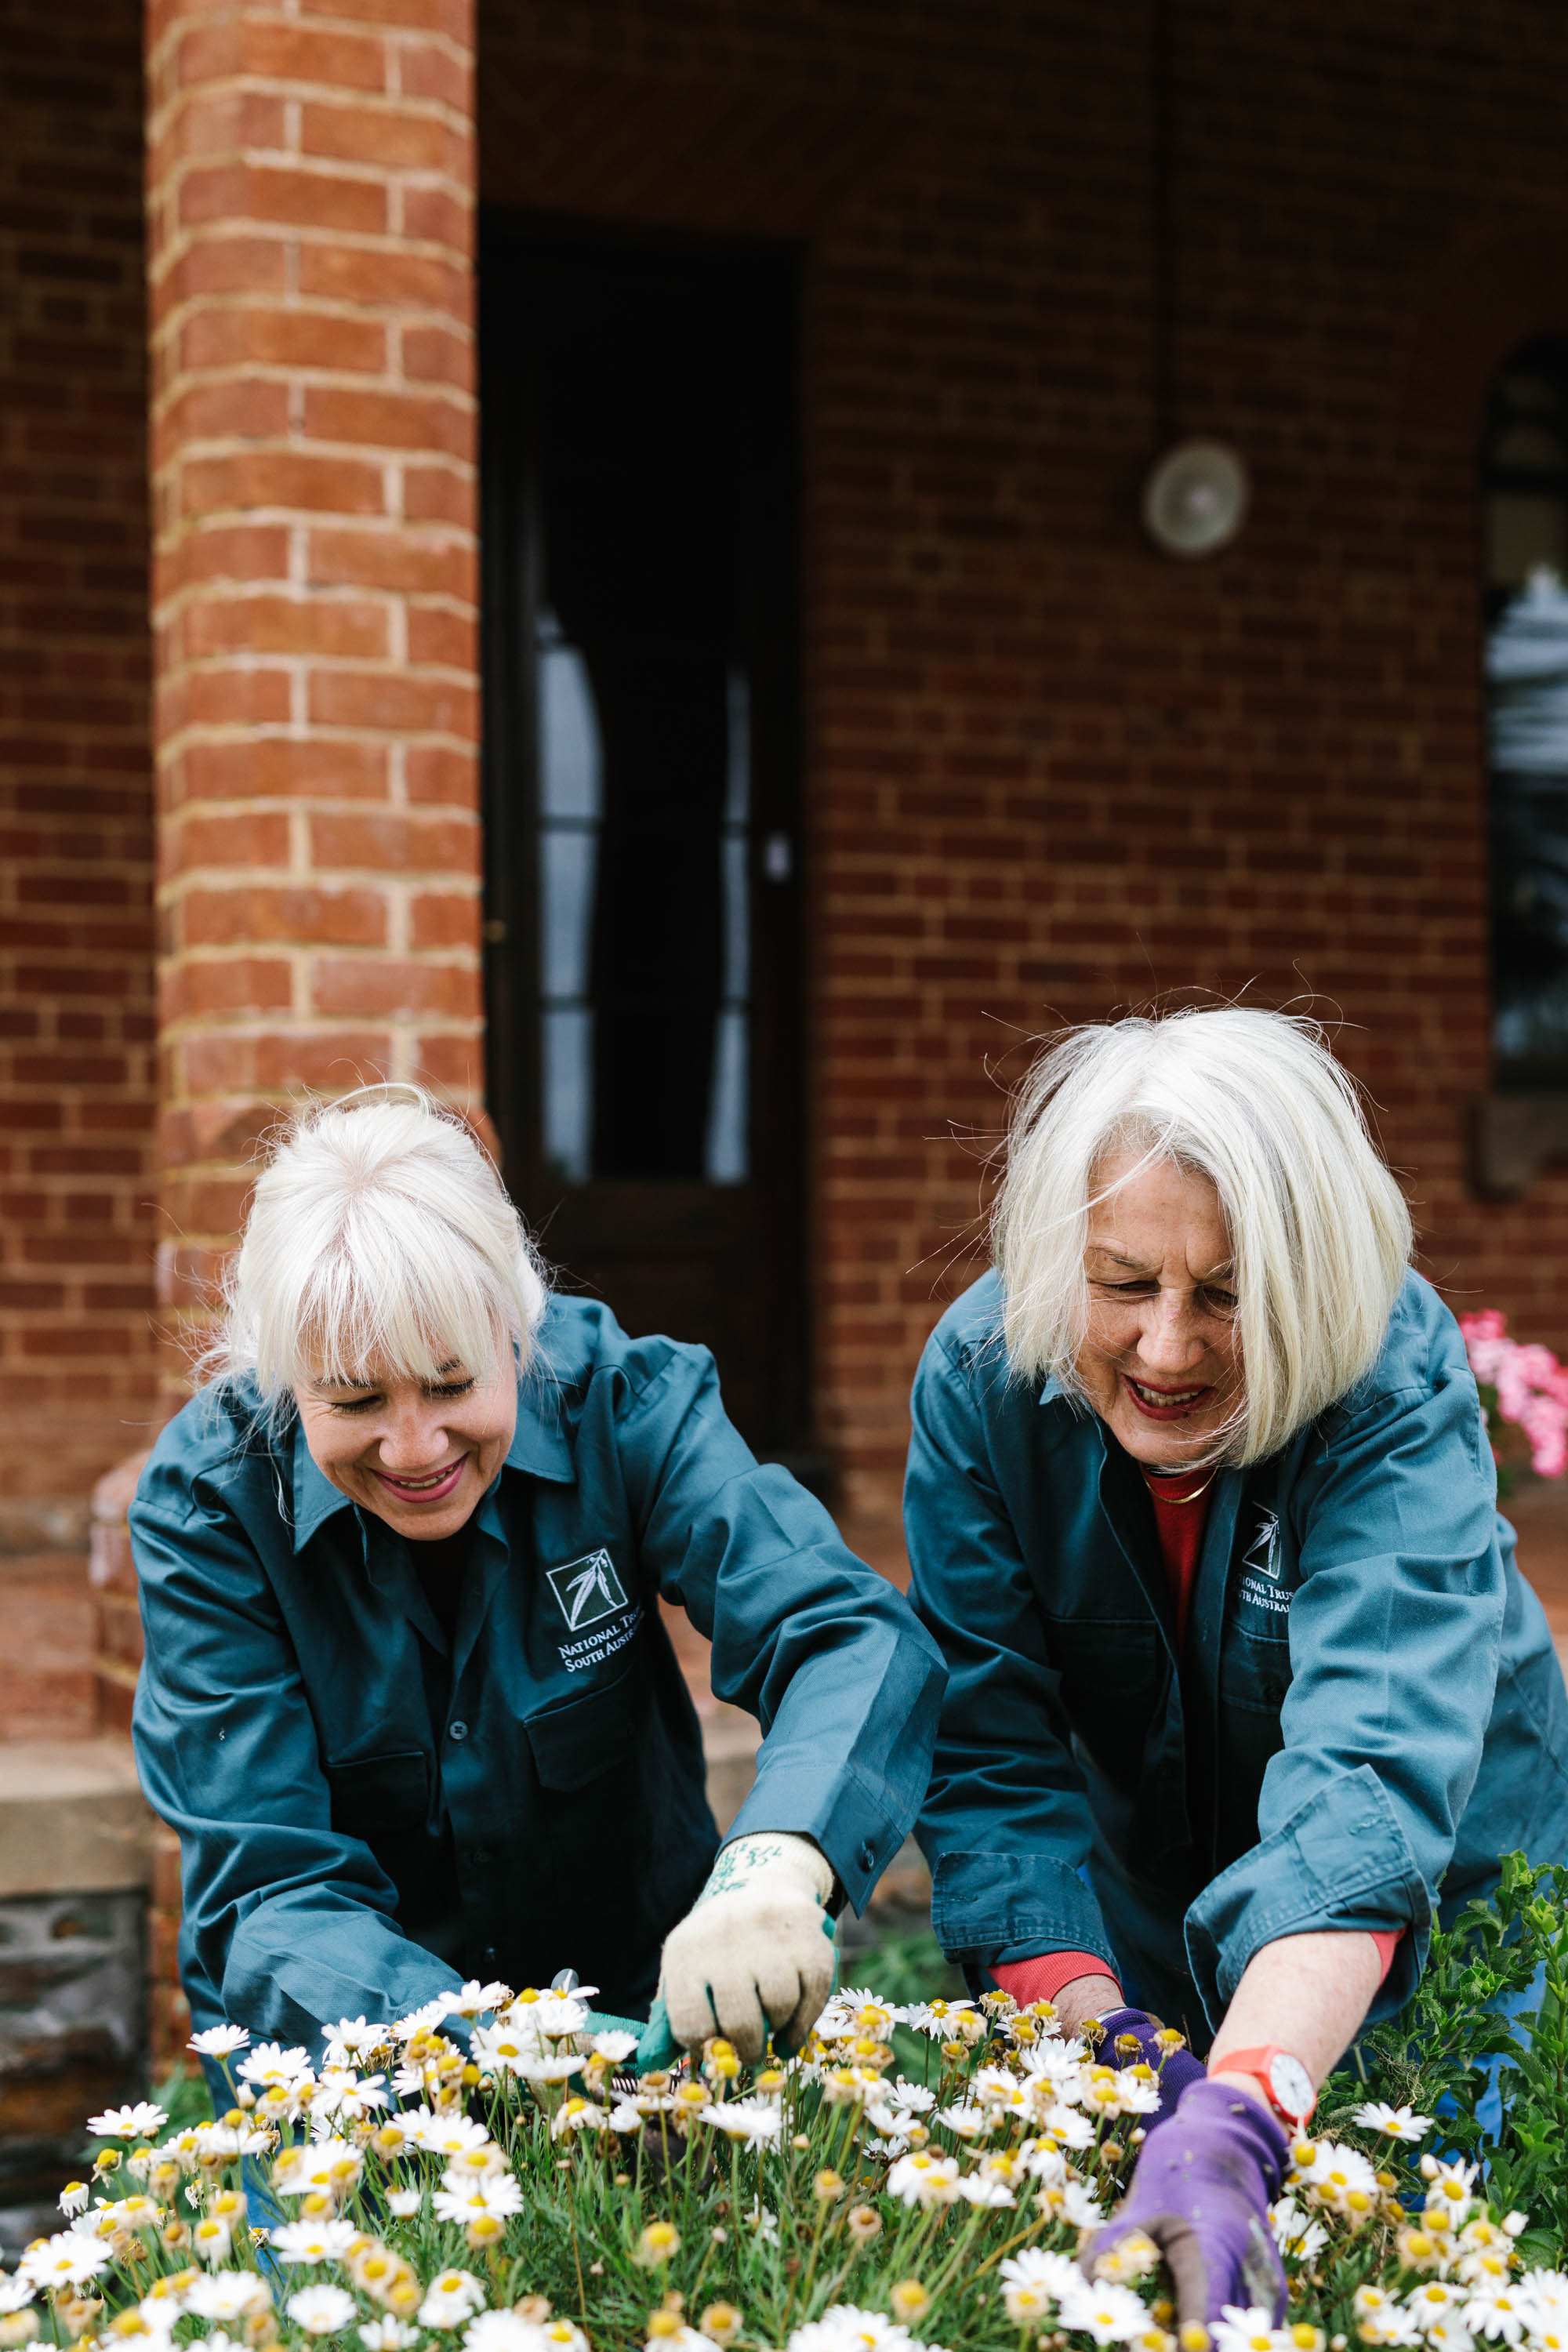 Marnie Hawson for Beaumont House and The National Trust